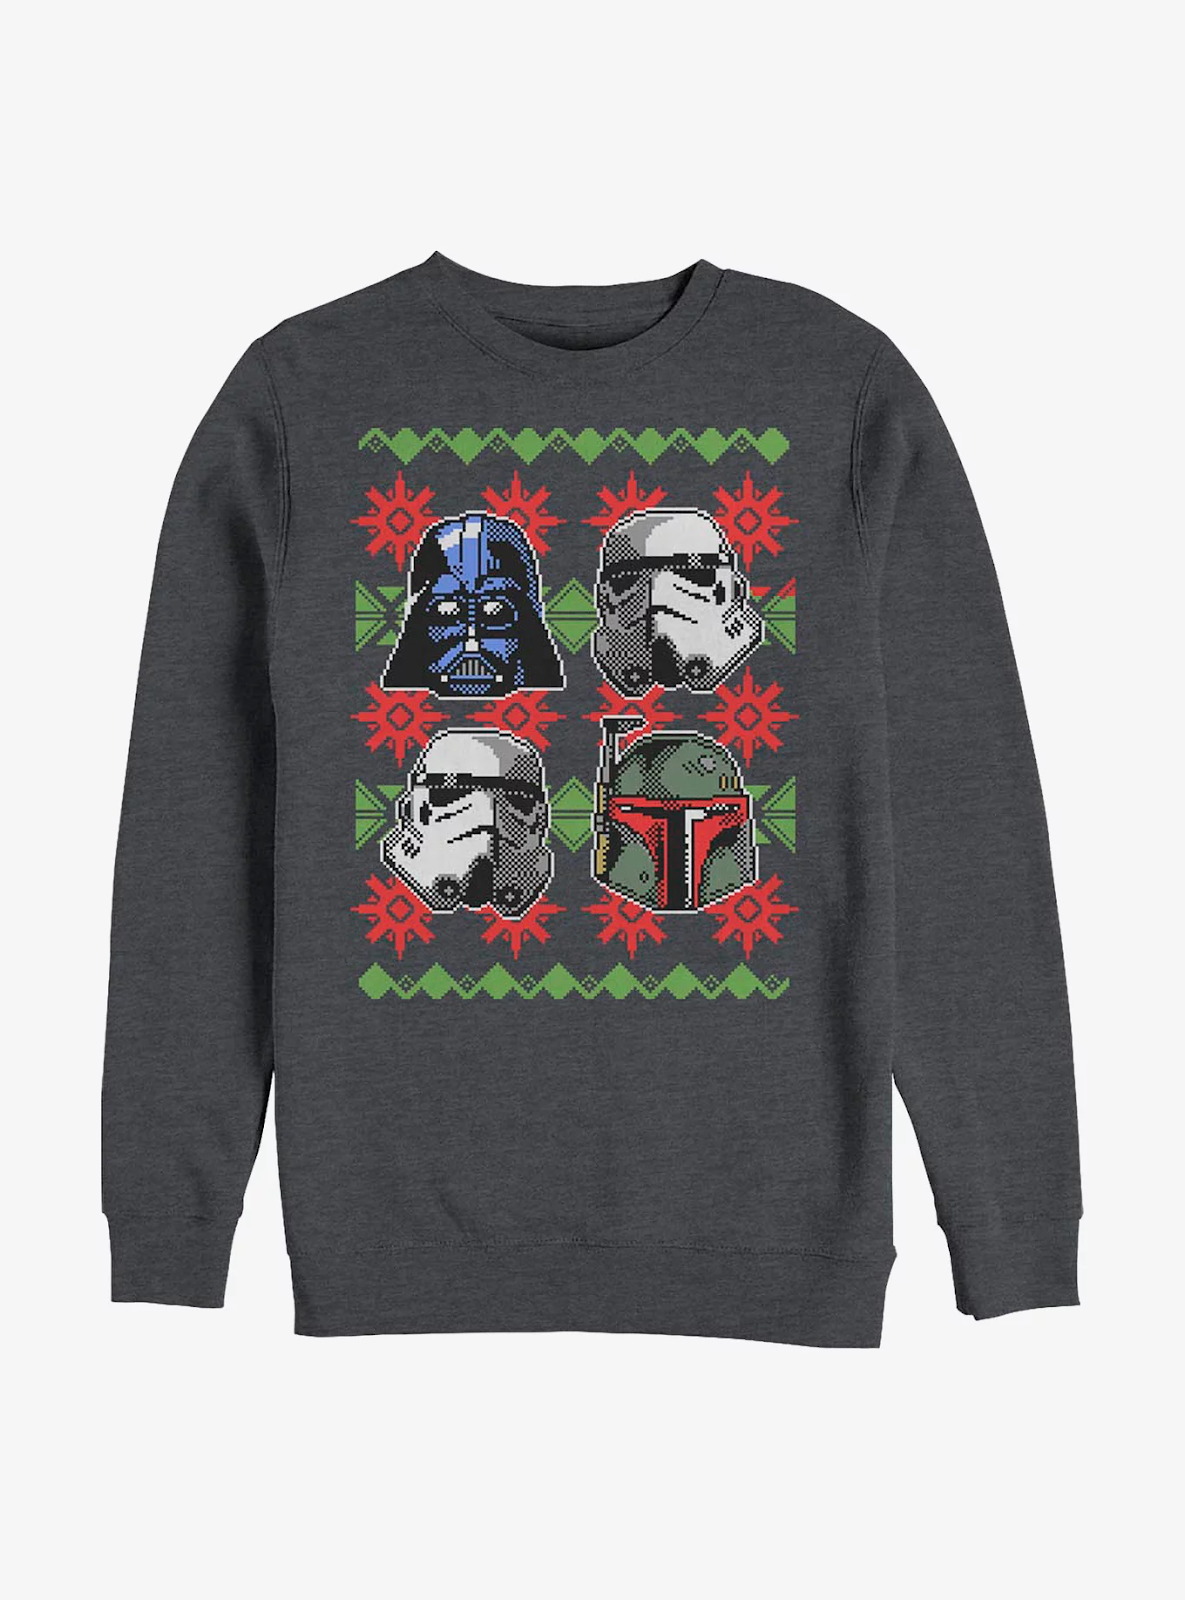 Hot Topic Star Wars Ugly Sweater